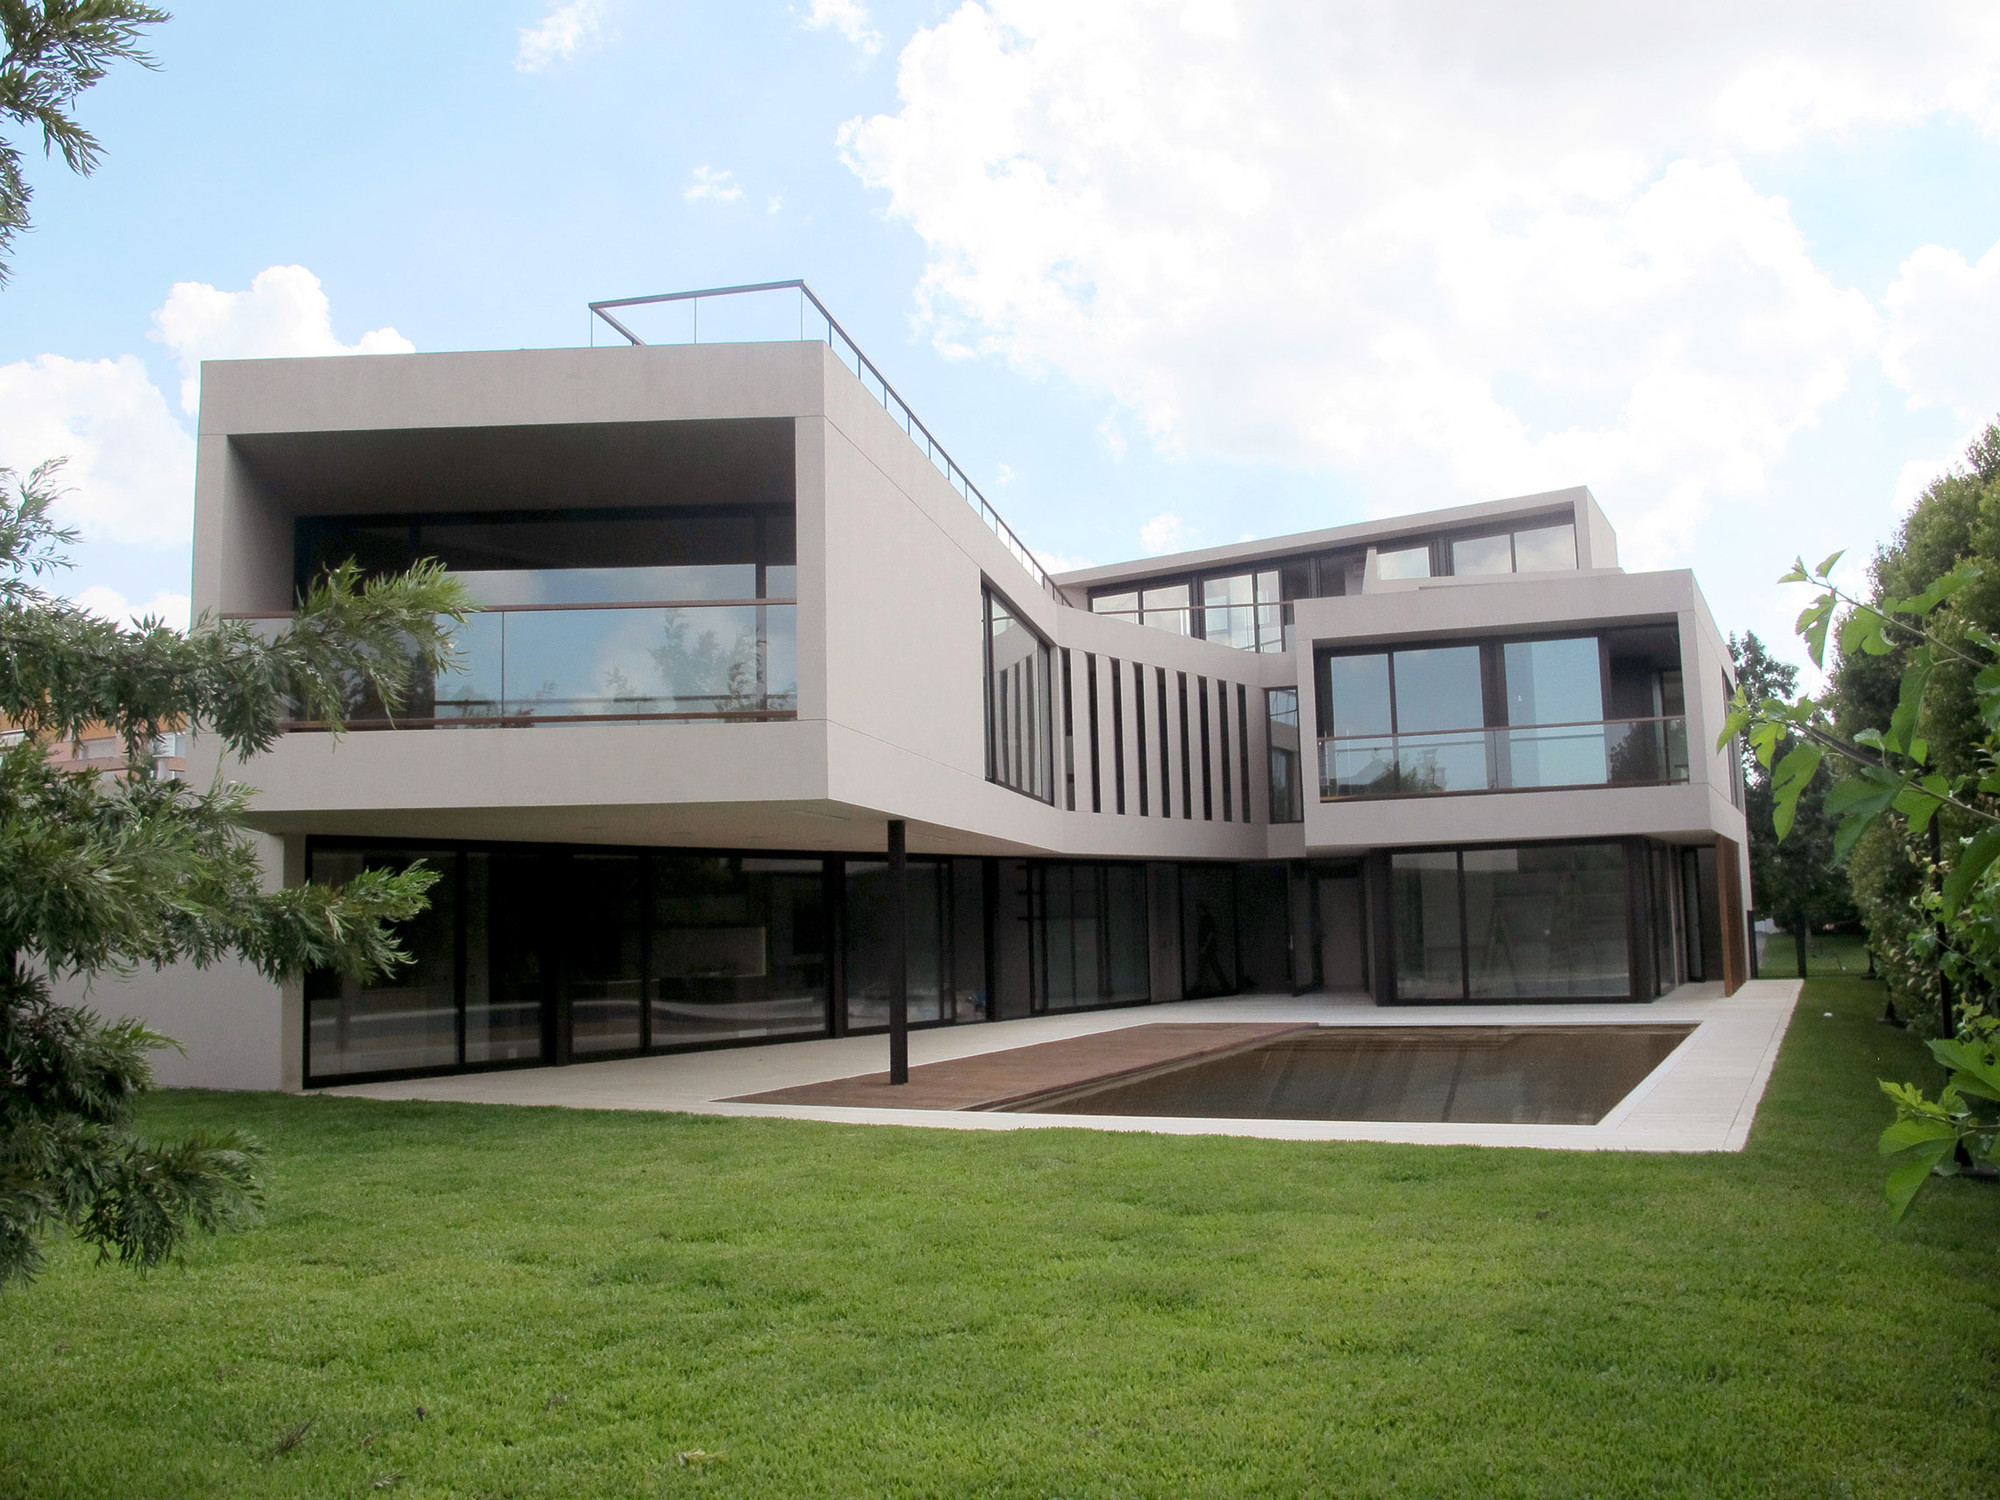 House in Tigre / FILM-Obras de Arquitectura, Courtesy of FILM-Obras de Arquitectura